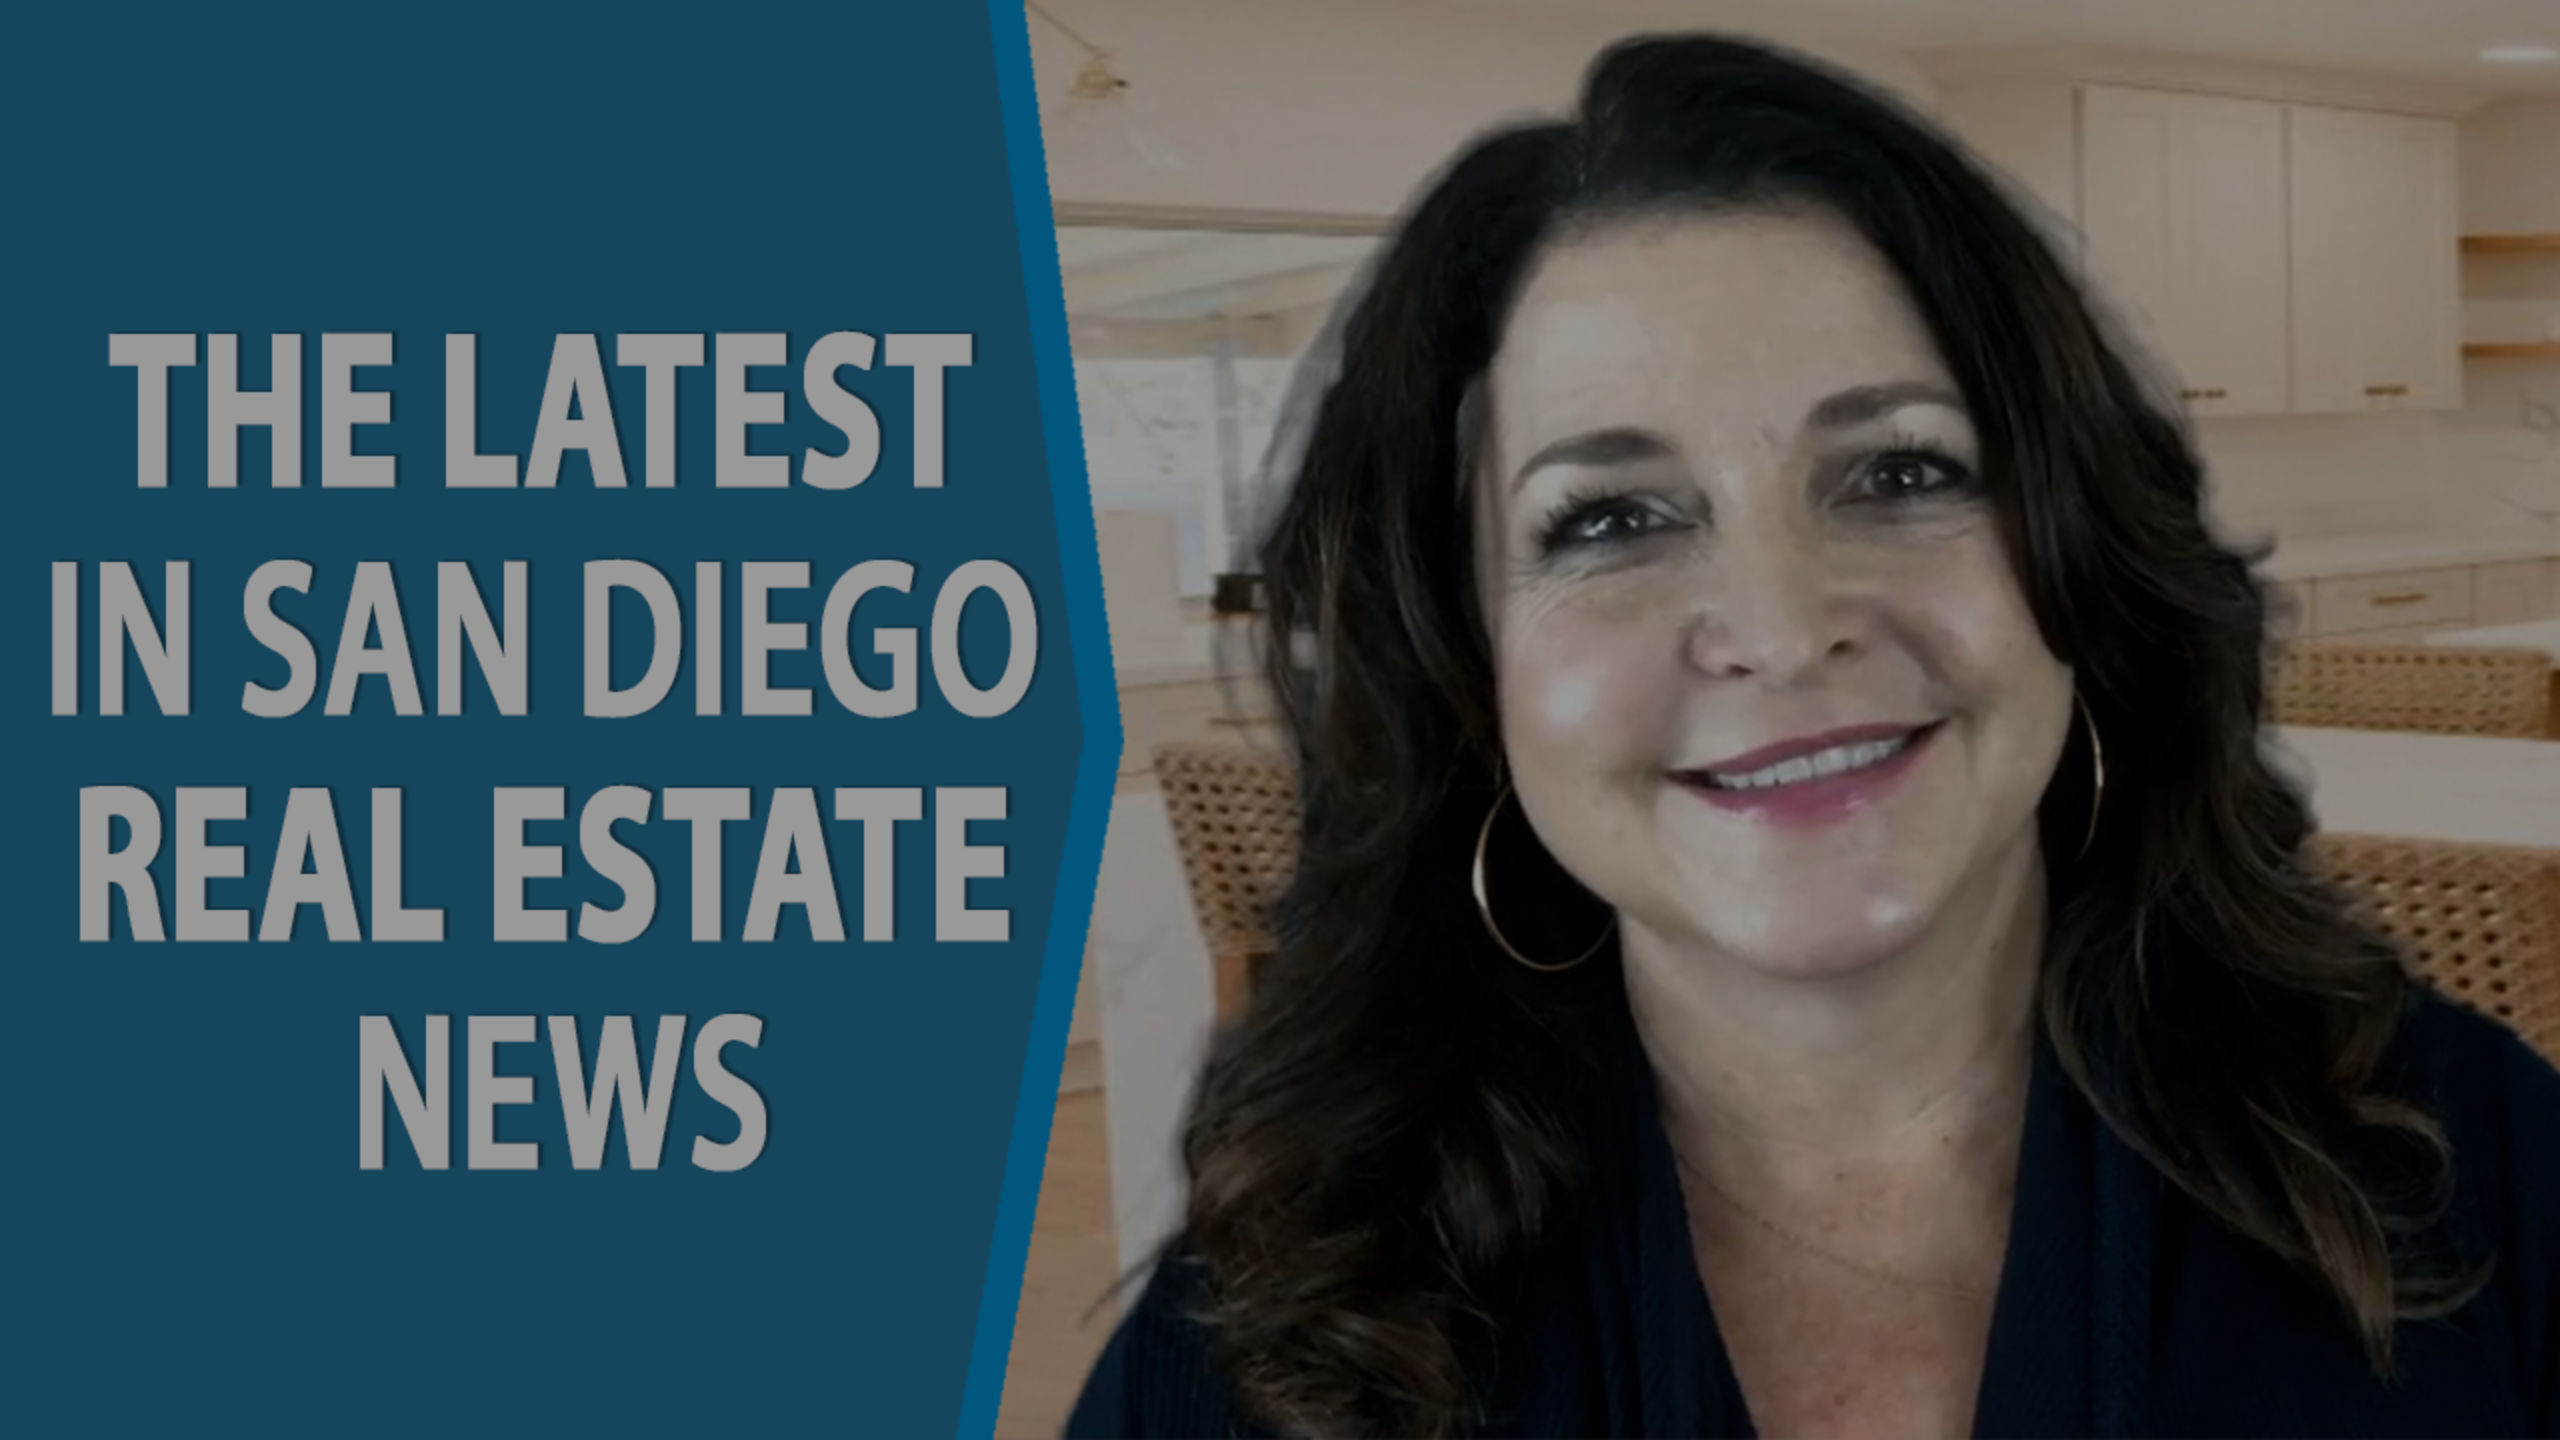 San Diego Market Update for 2021